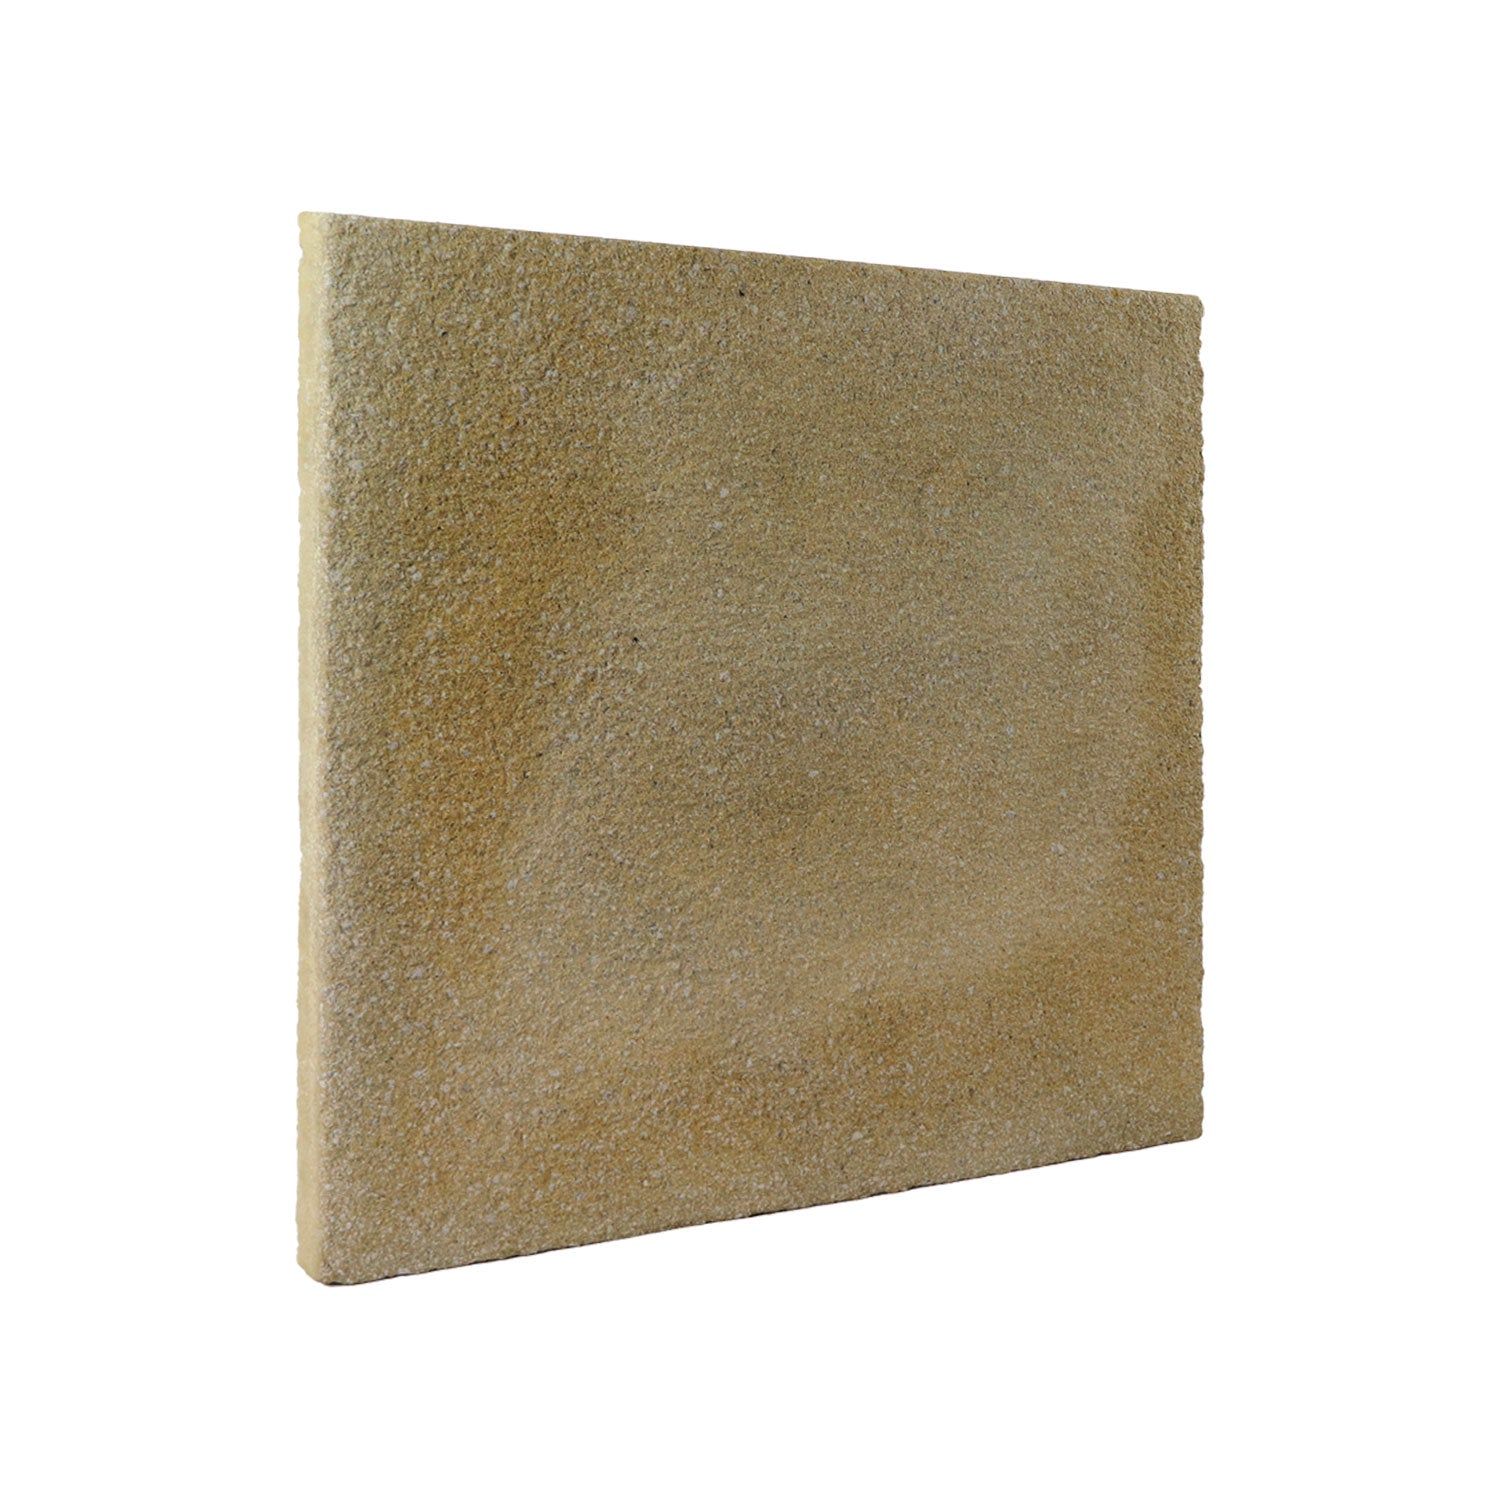 Textured Slab Yellow 600mm x 600mm